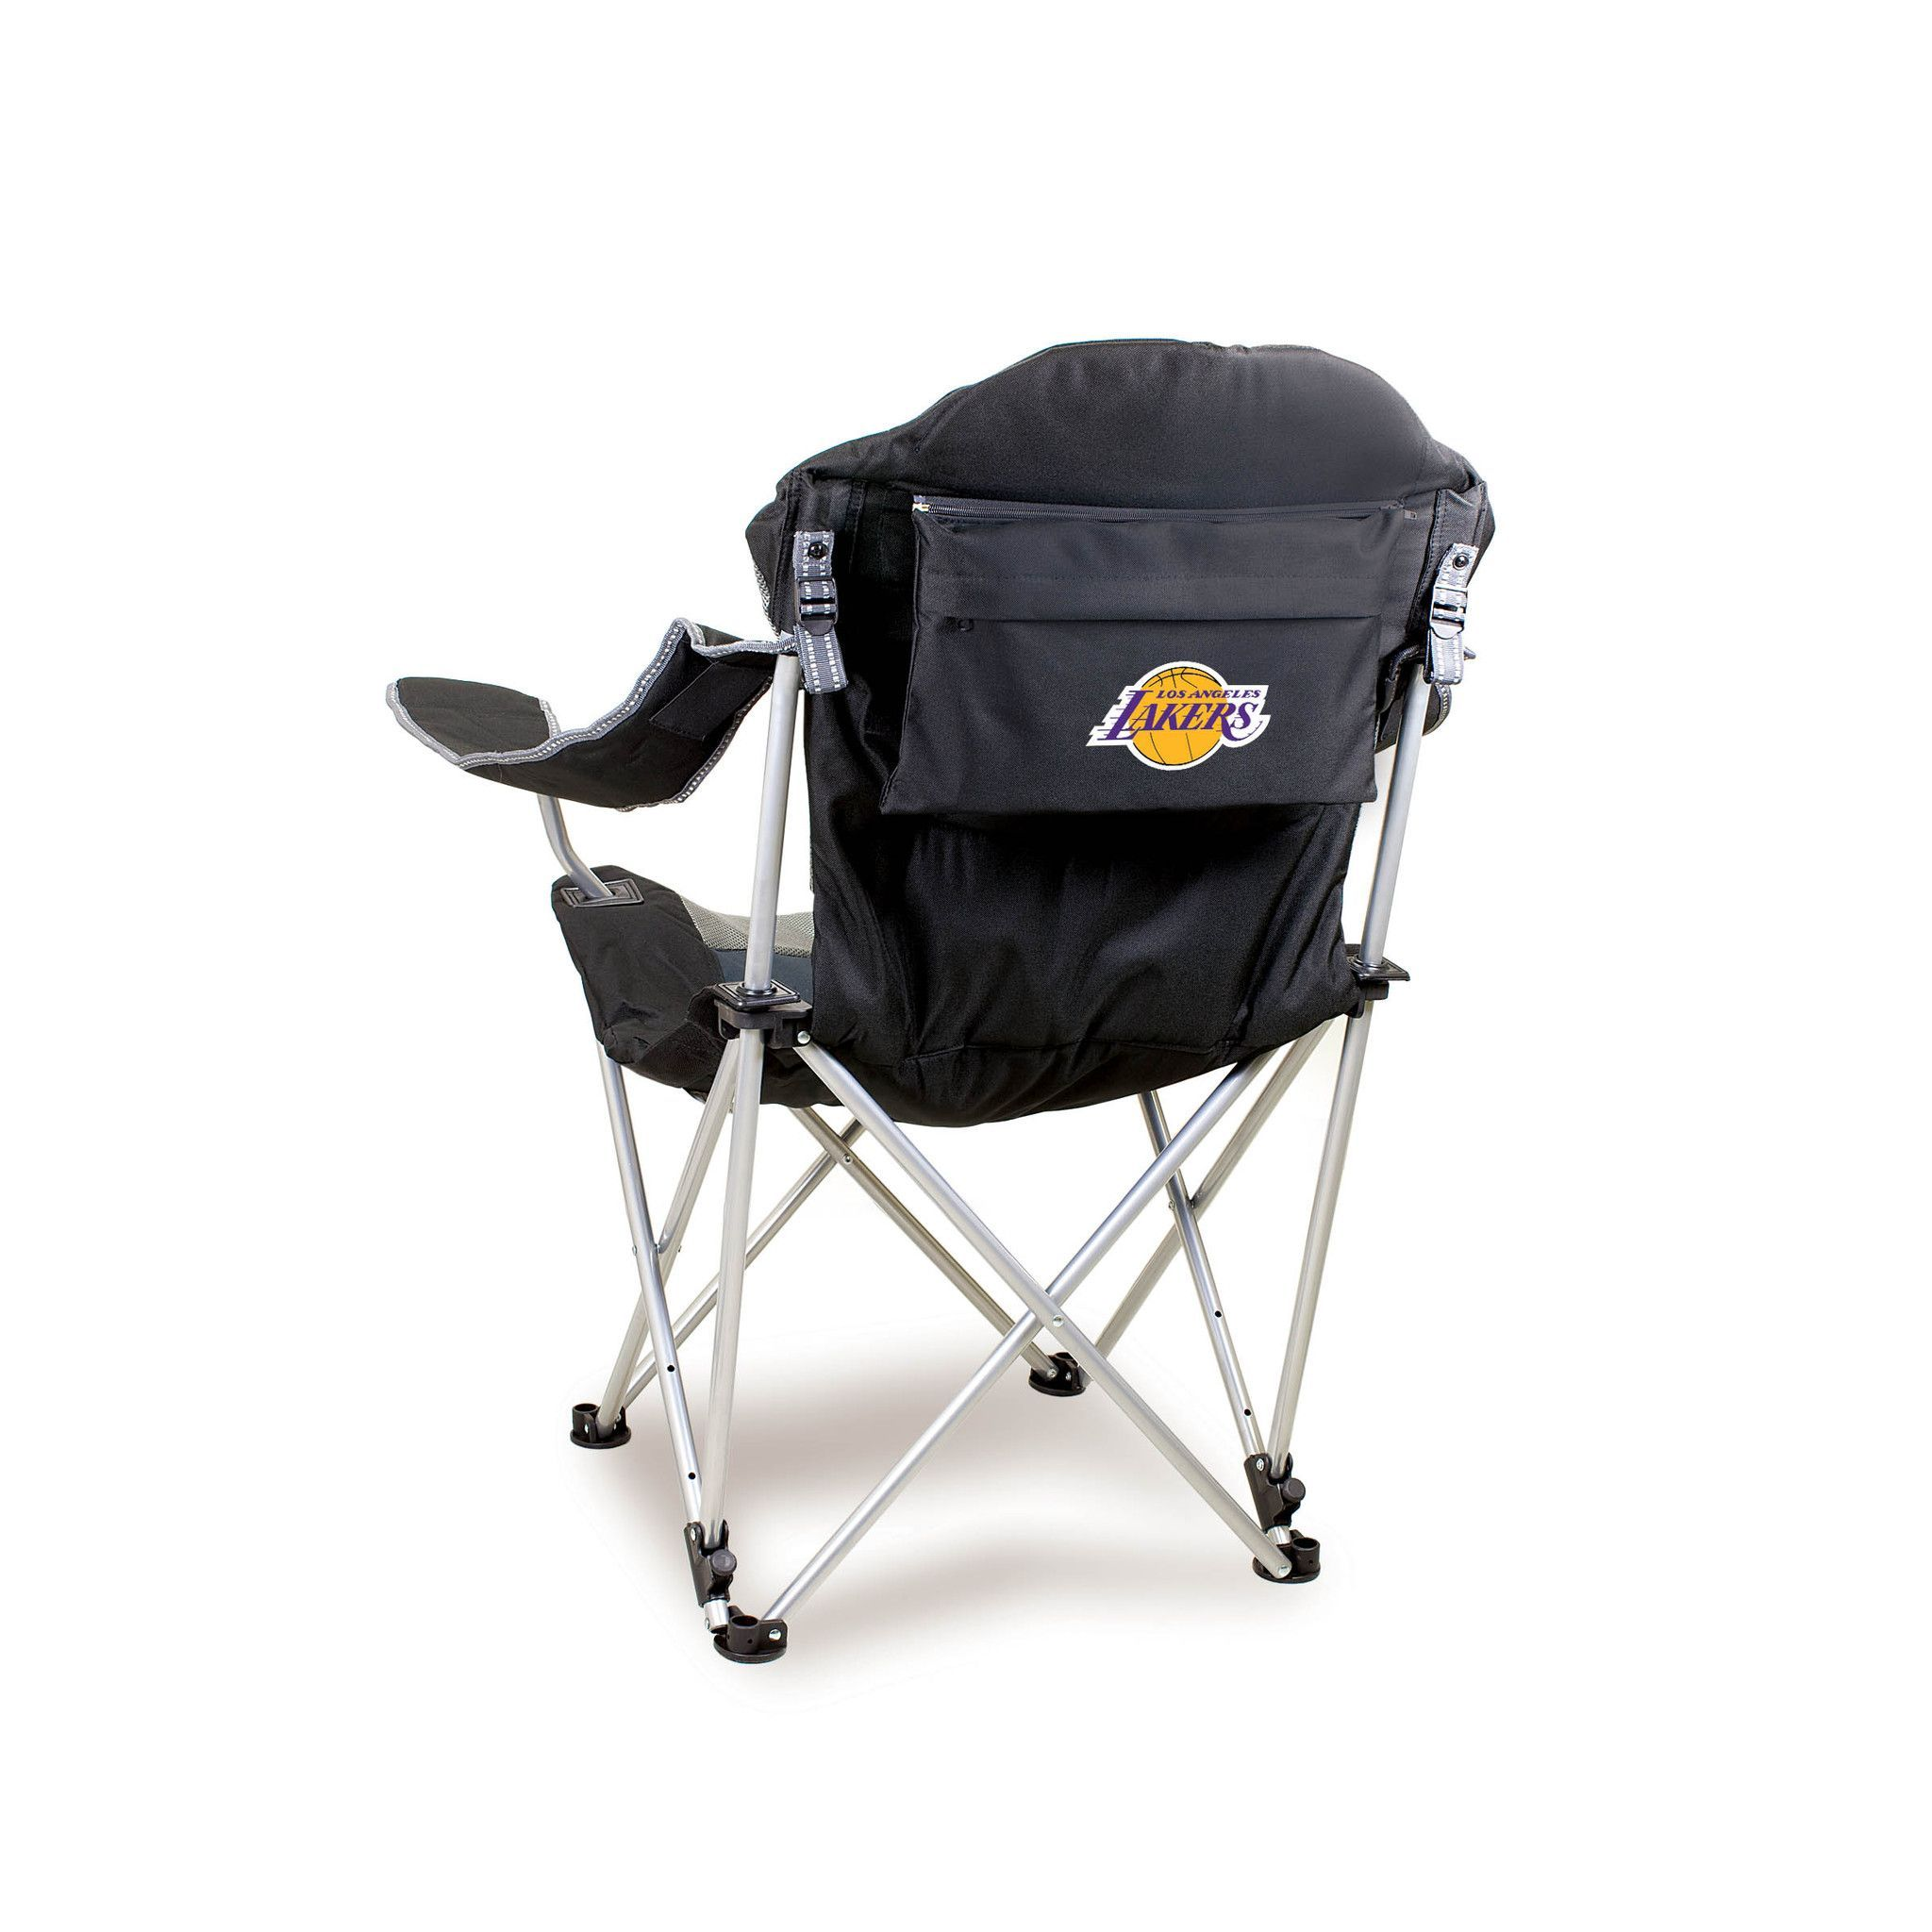 The Los Angeles Lakers Reclining Camp Chair